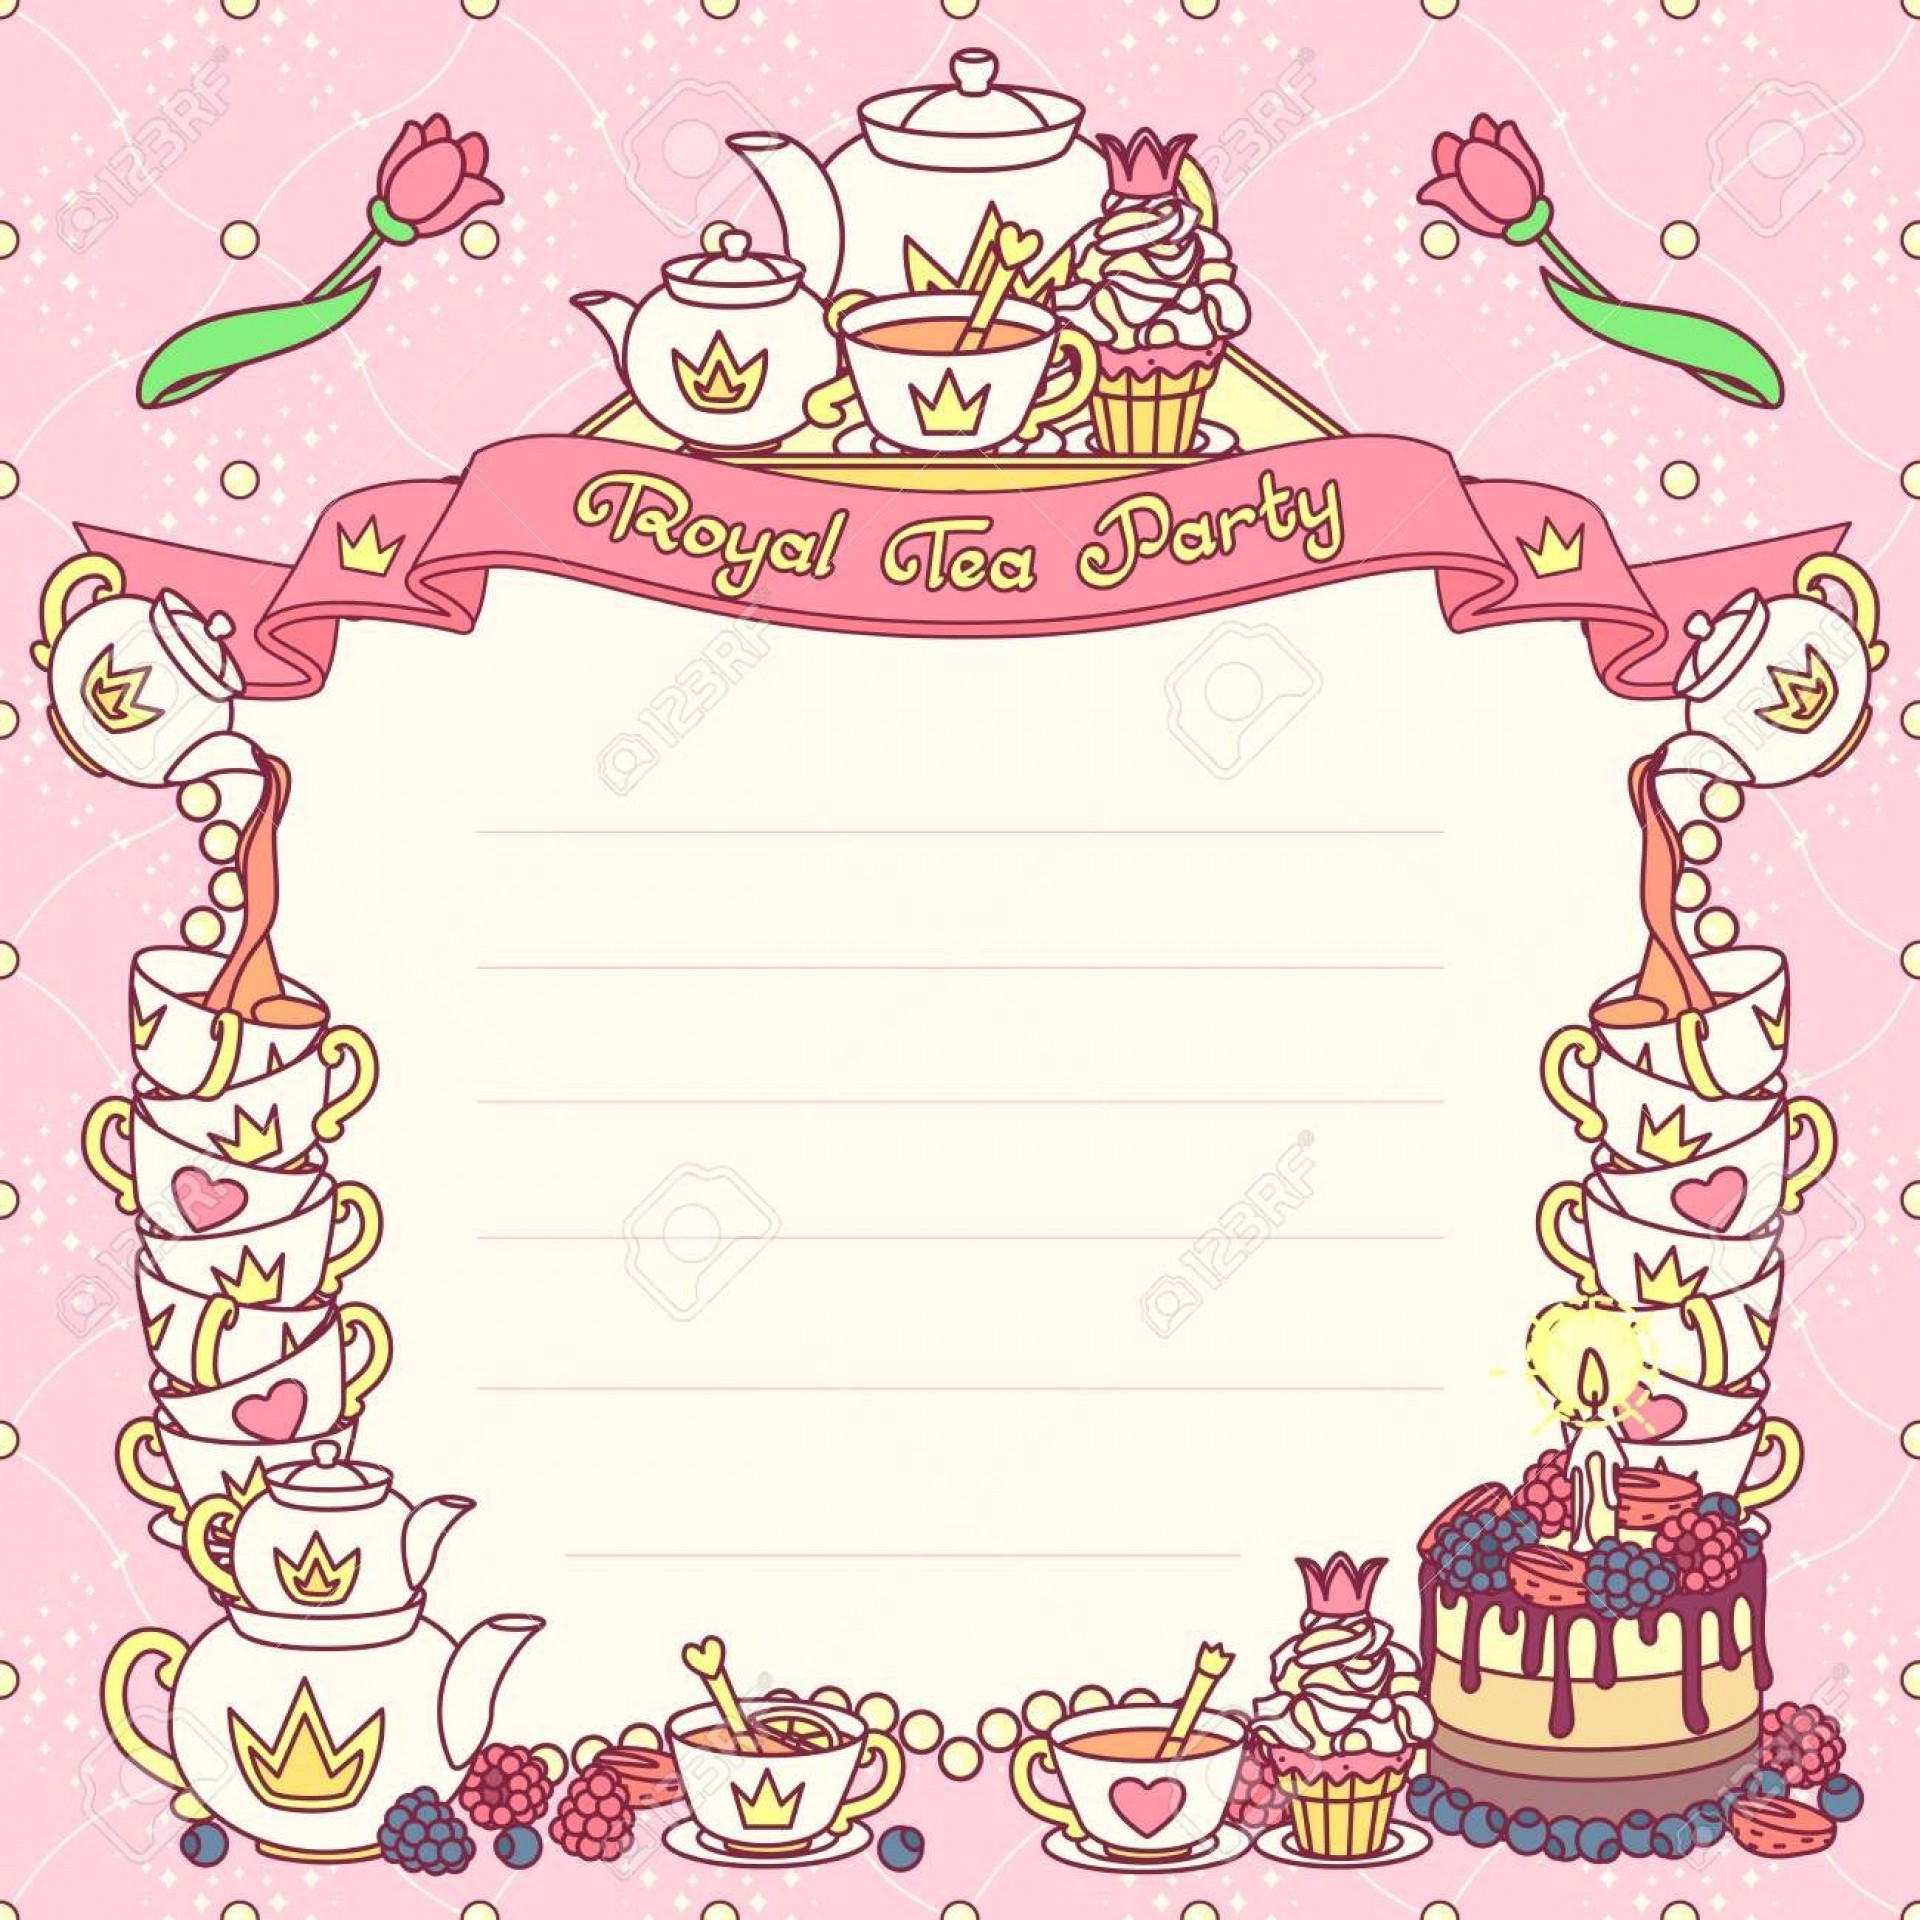 006 Sensational Tea Party Invitation Template Picture  Vintage Free Editable Card Pdf1920